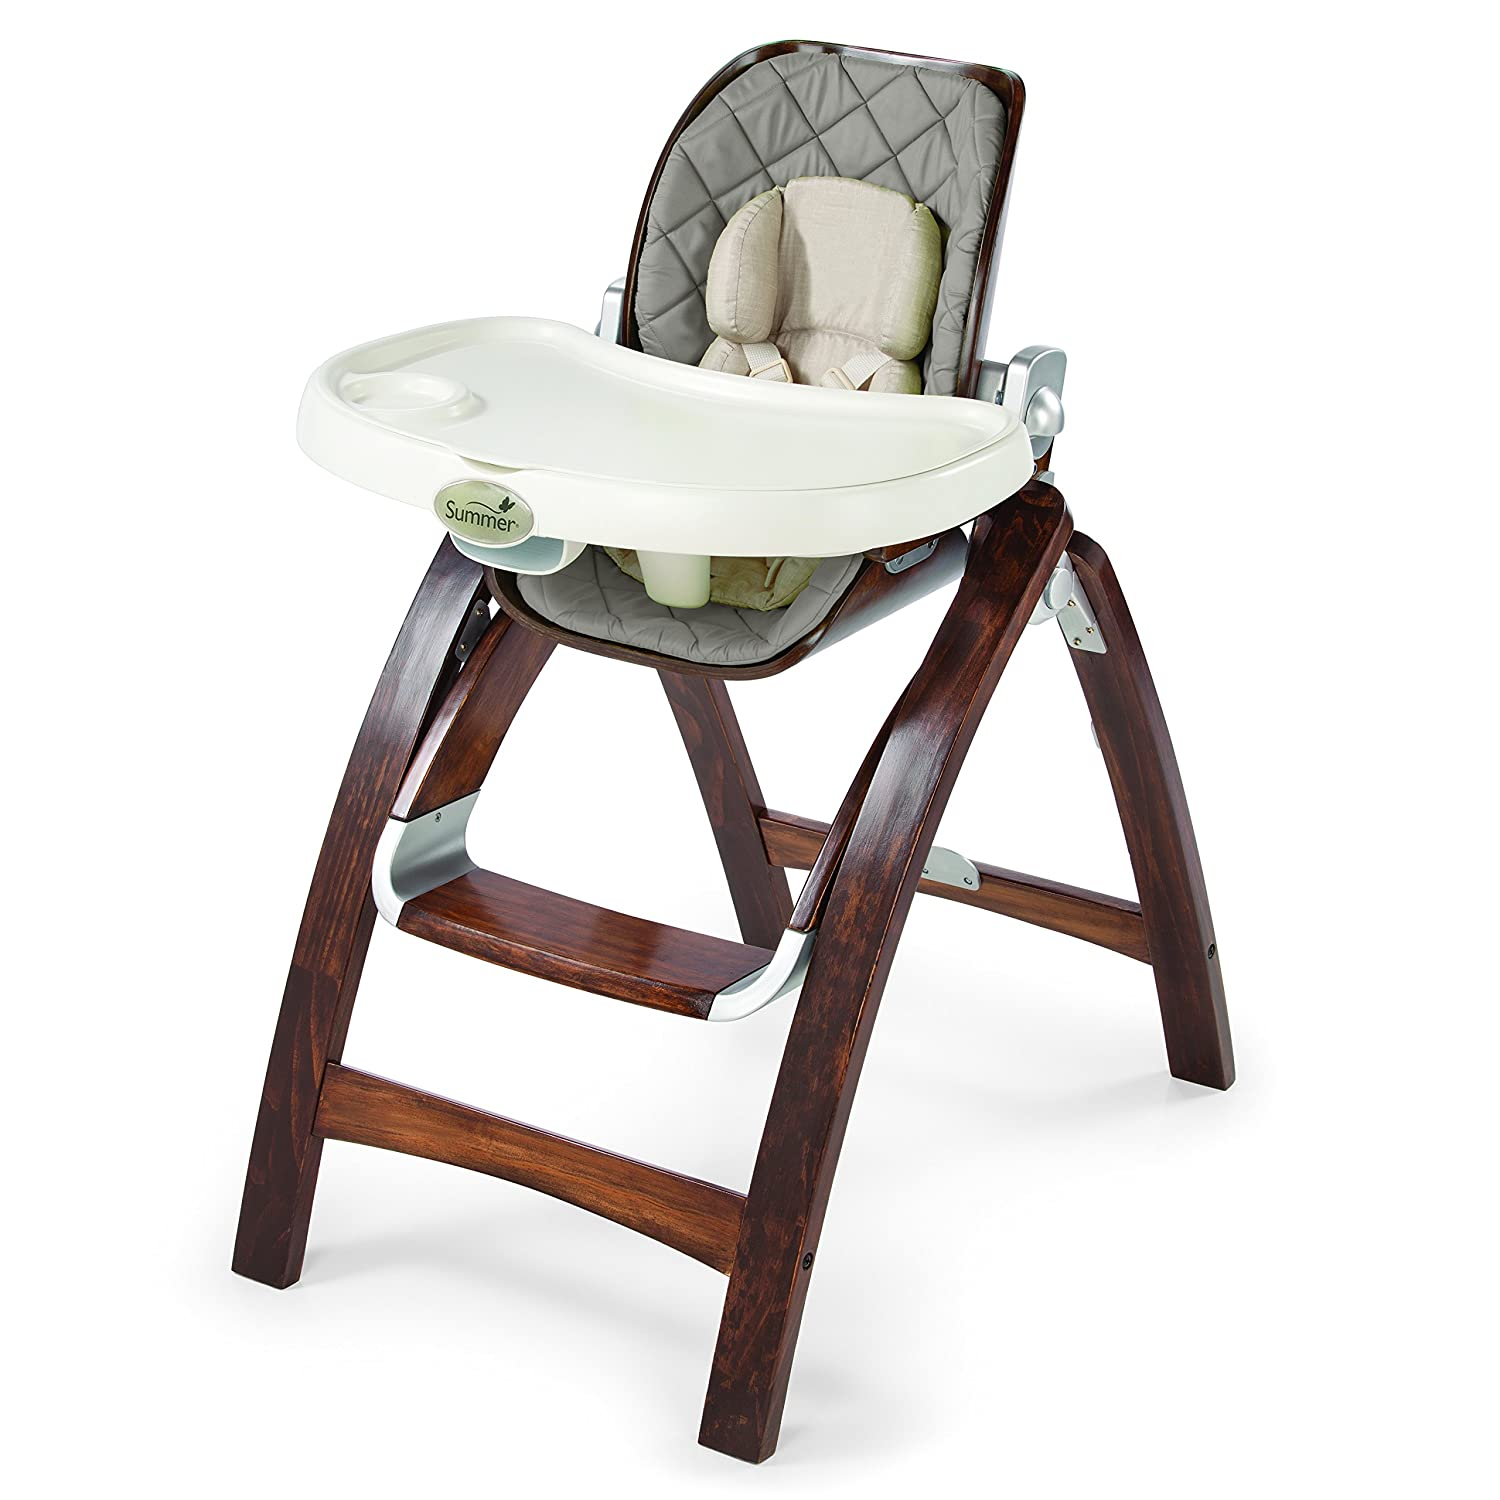 Wood Baby High Chair Gray Infant Seat Feeding Toddler